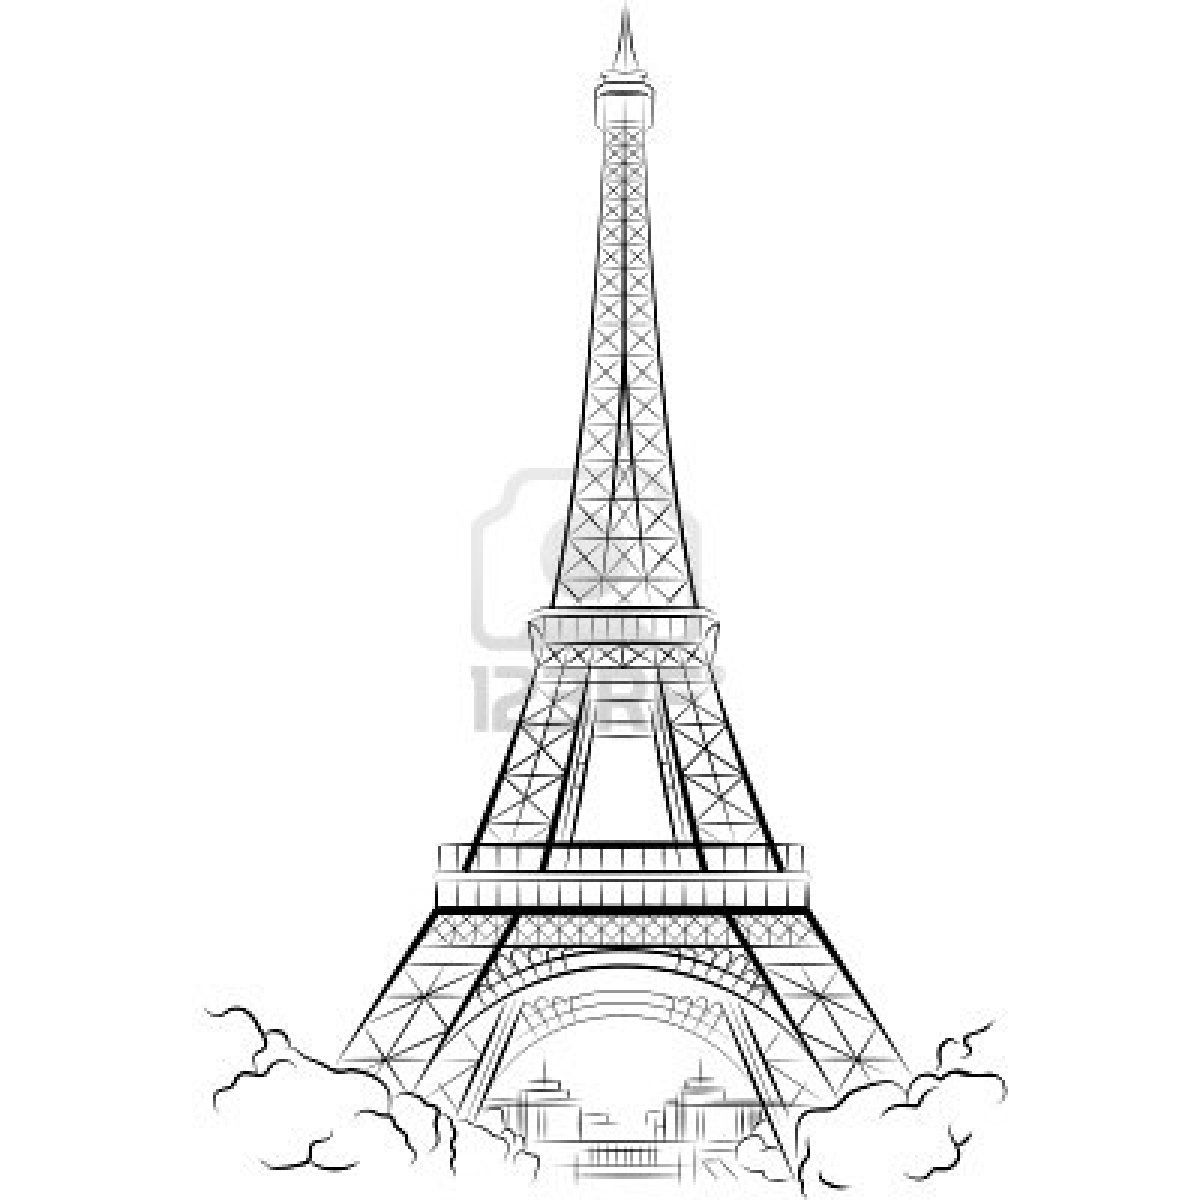 Drawing eiffel tower in paris france vector illustration for Online drawing maker